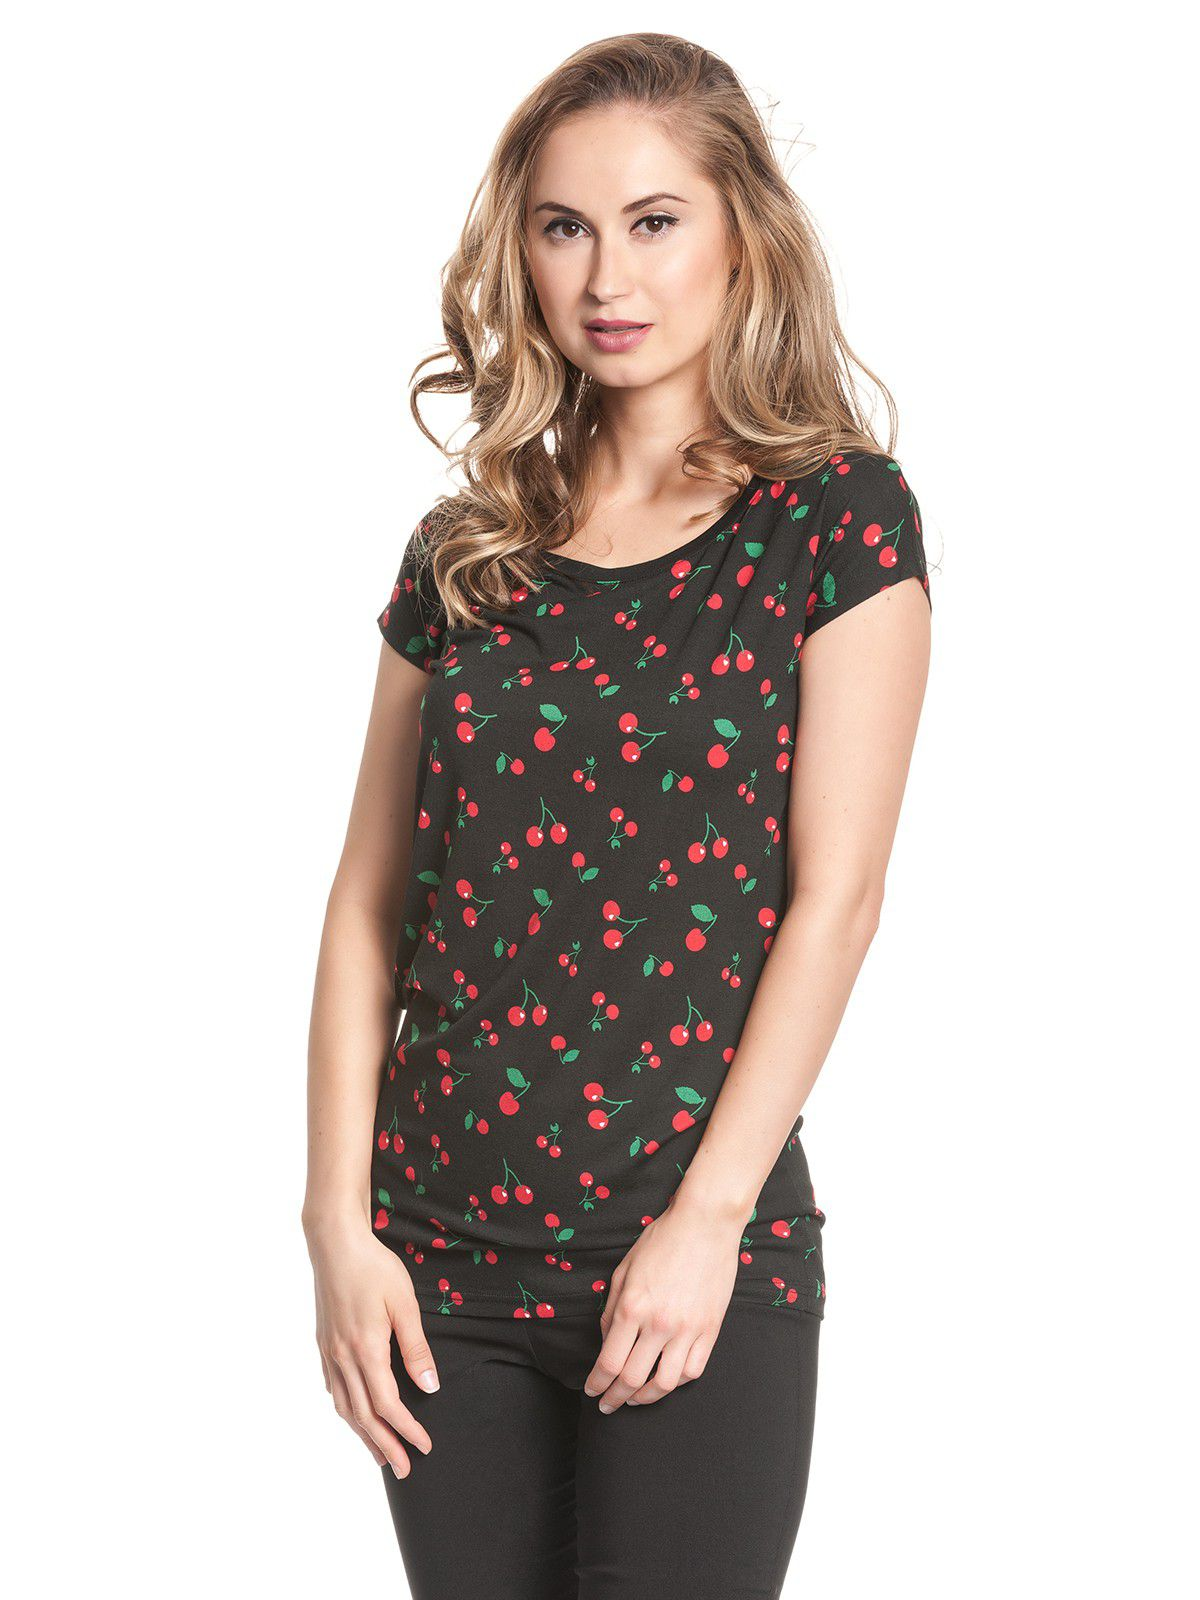 NP38663_tee-shirt-rockabilly-pin-up-50-s-pussy-deluxe-cerises